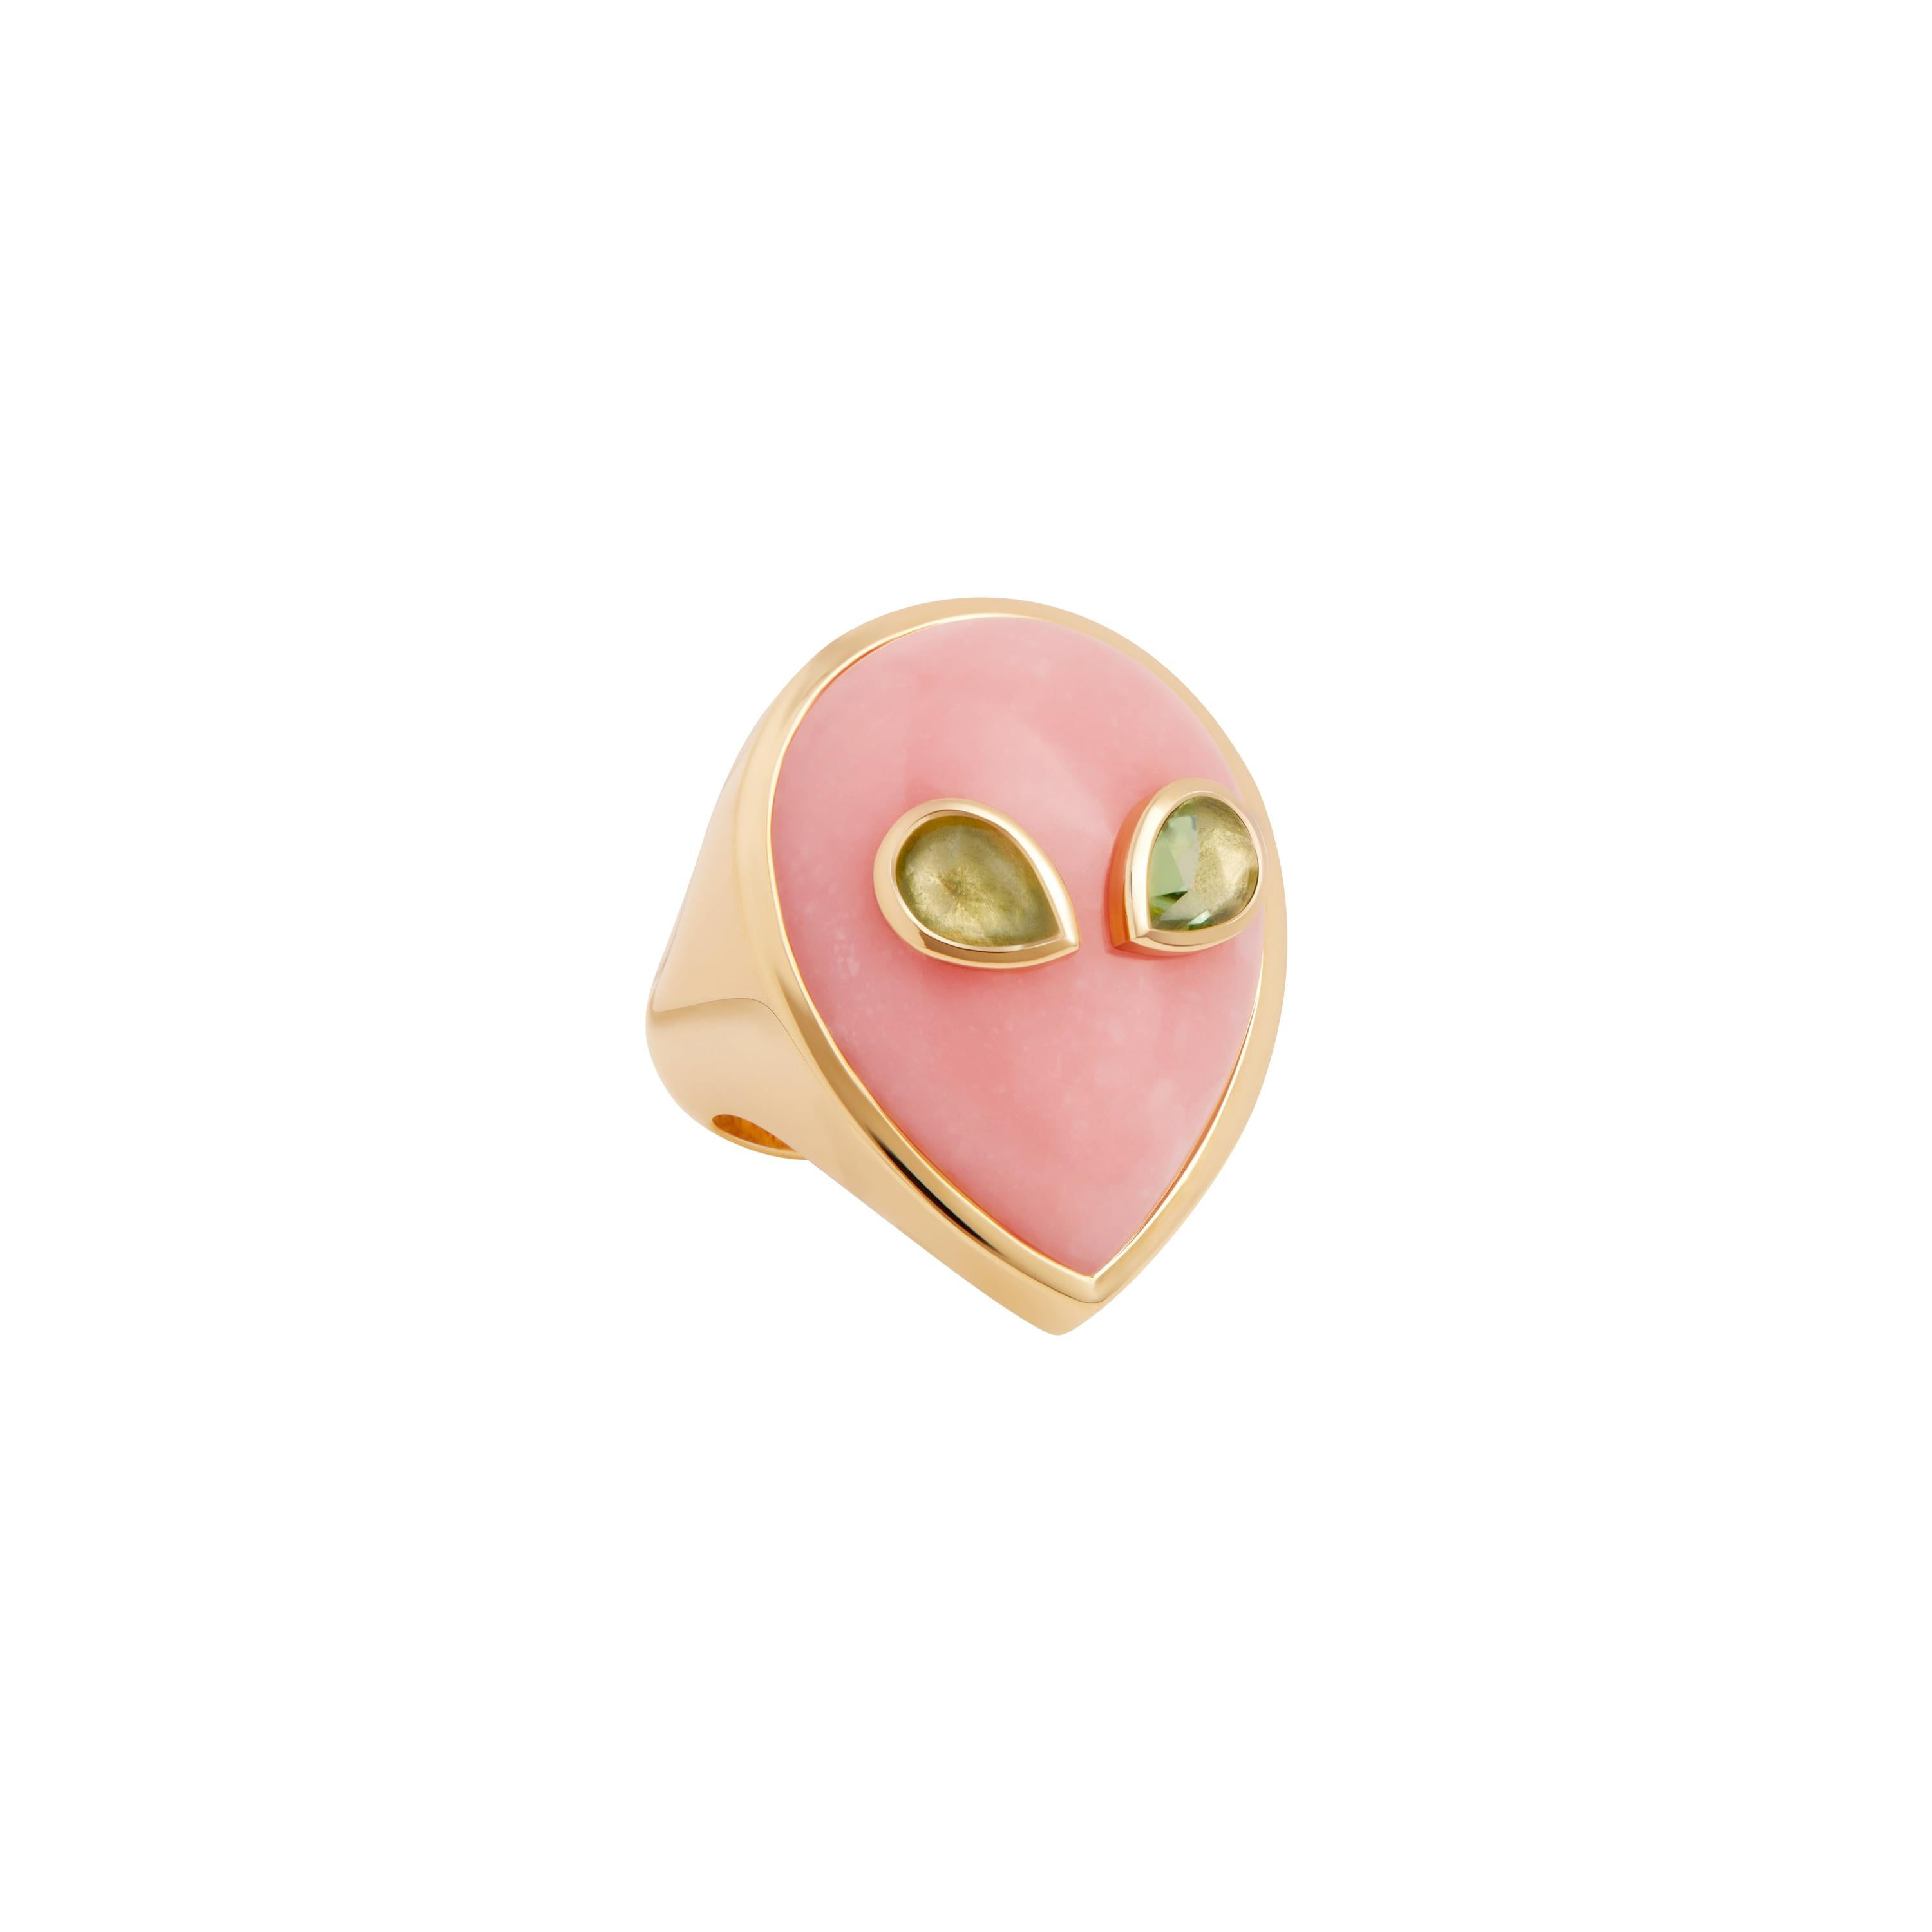 Alien Ring, 18 Karat Yellow Gold Pink Opal and Peridot, One of a Kind